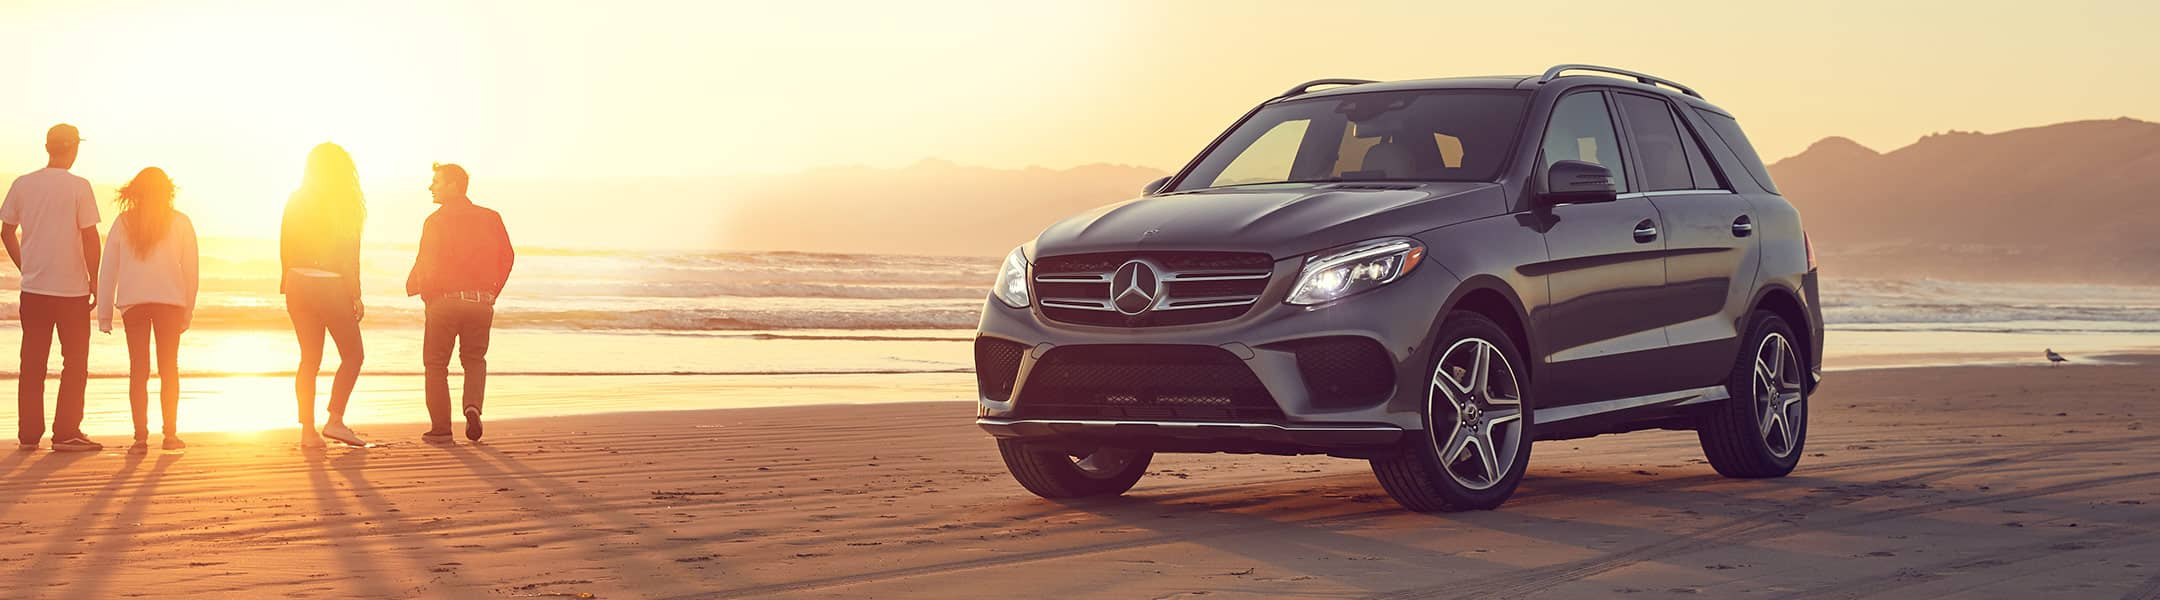 Four people watch the sunset as their Mercedes-Benz SUV is parked on a beach.